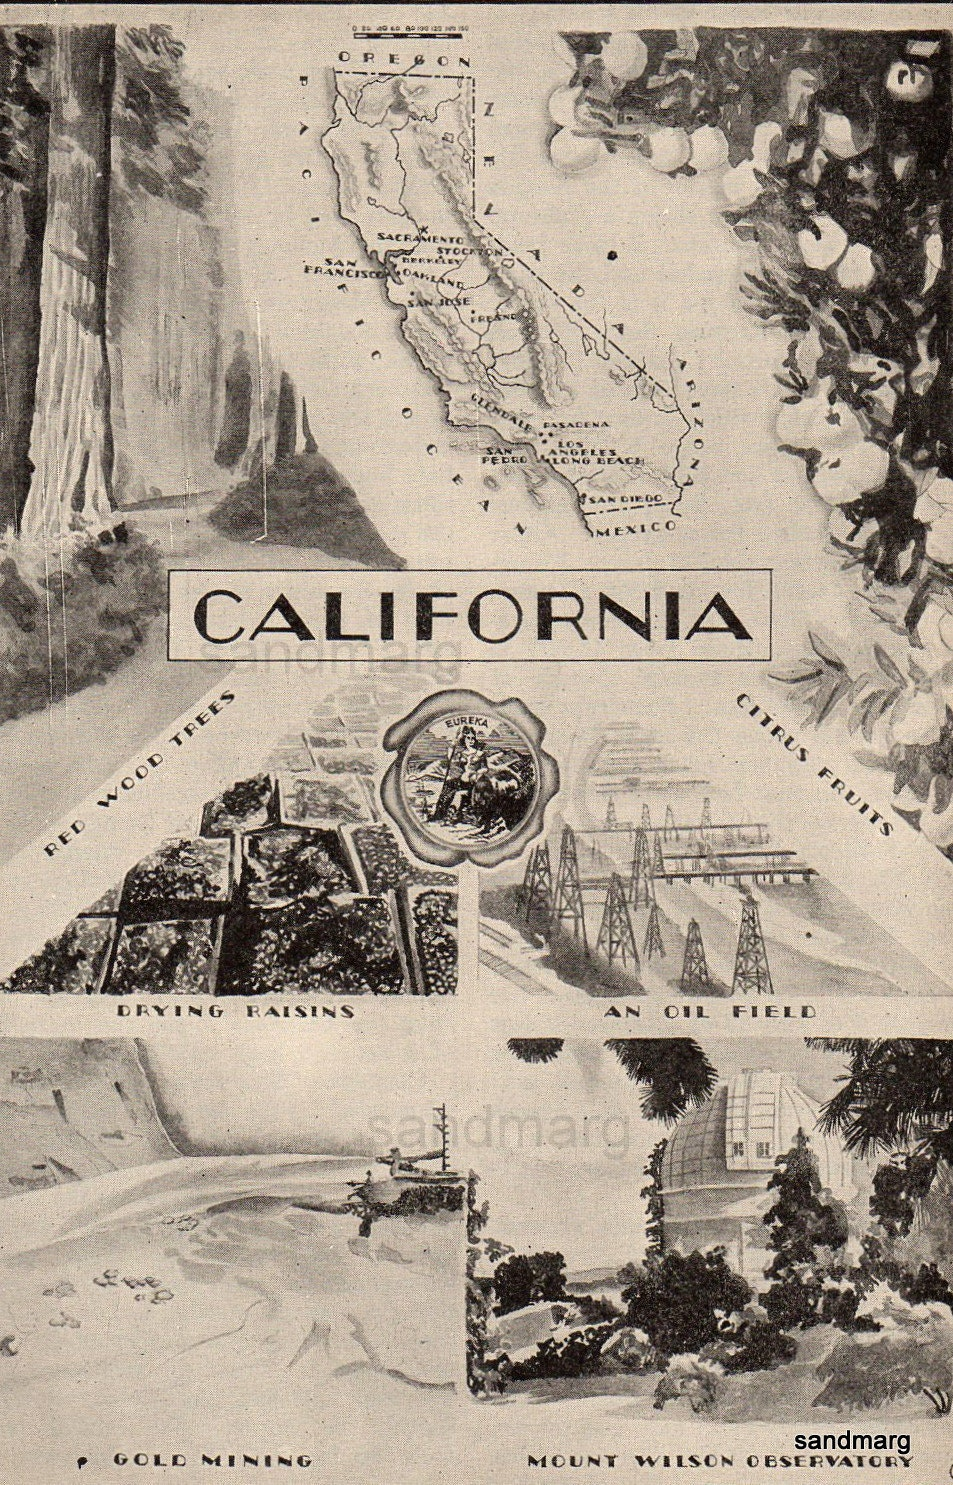 California Art Deco Style Map And Illustration Of Industry